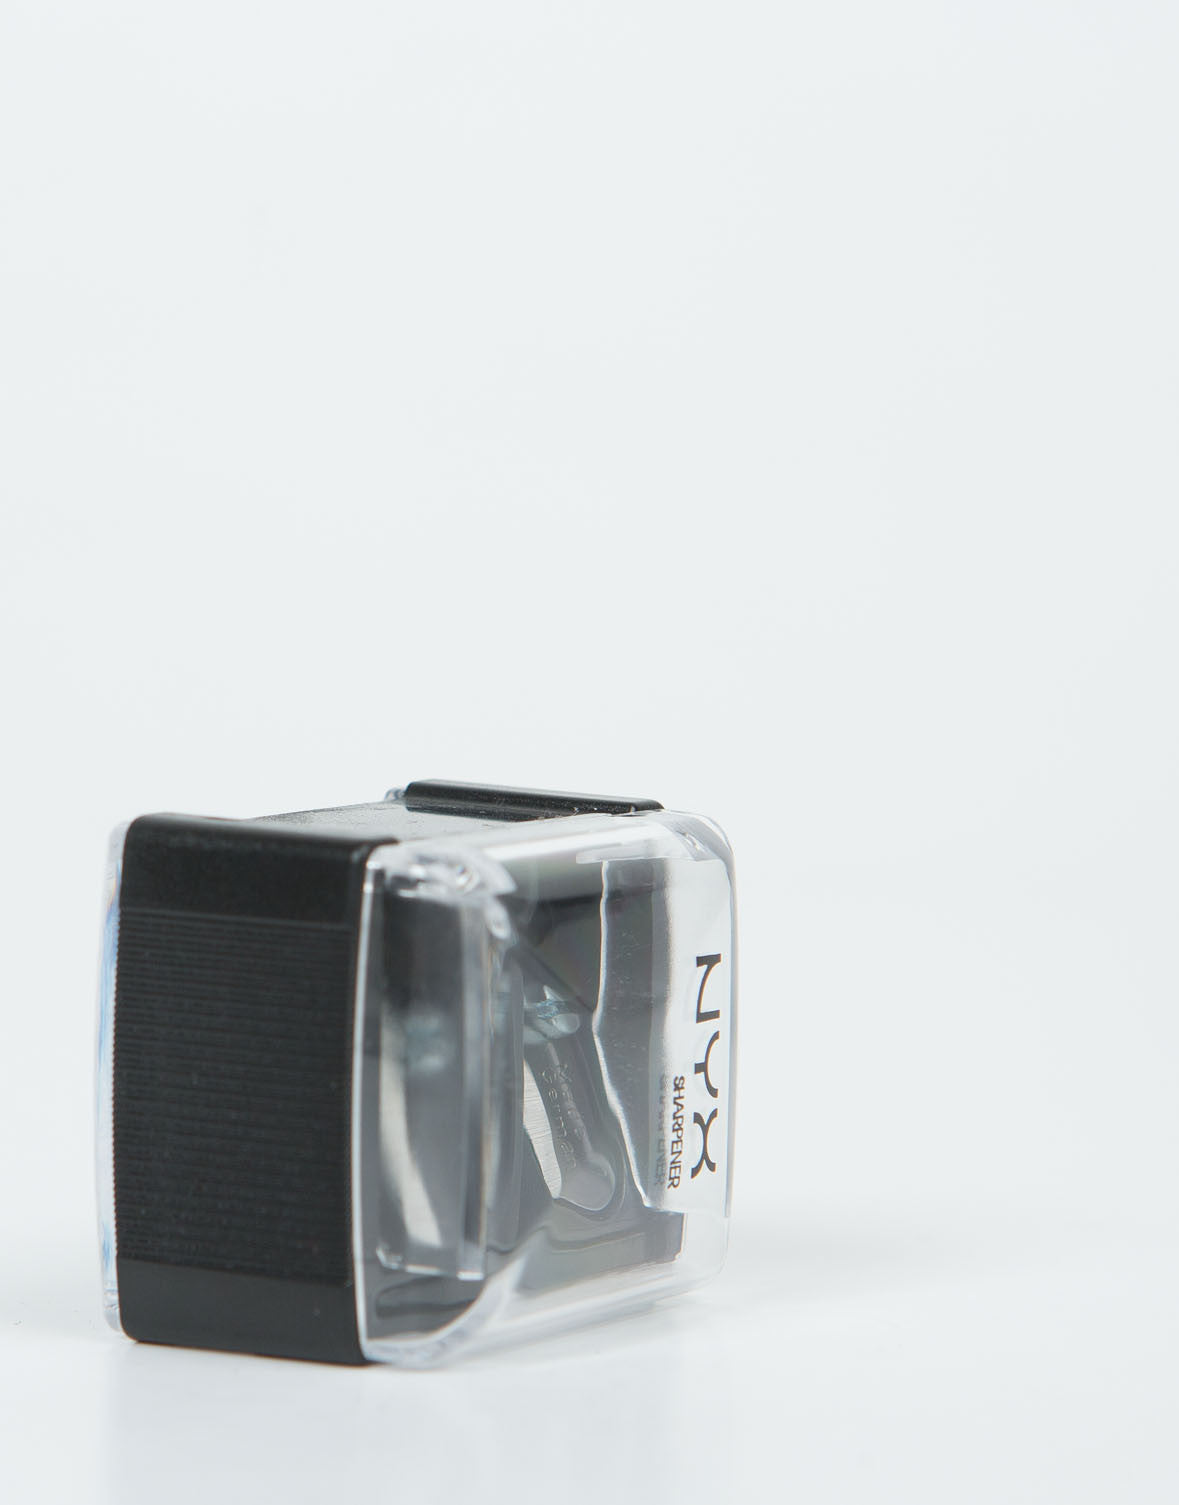 Side View of NYX Pencil Sharpener